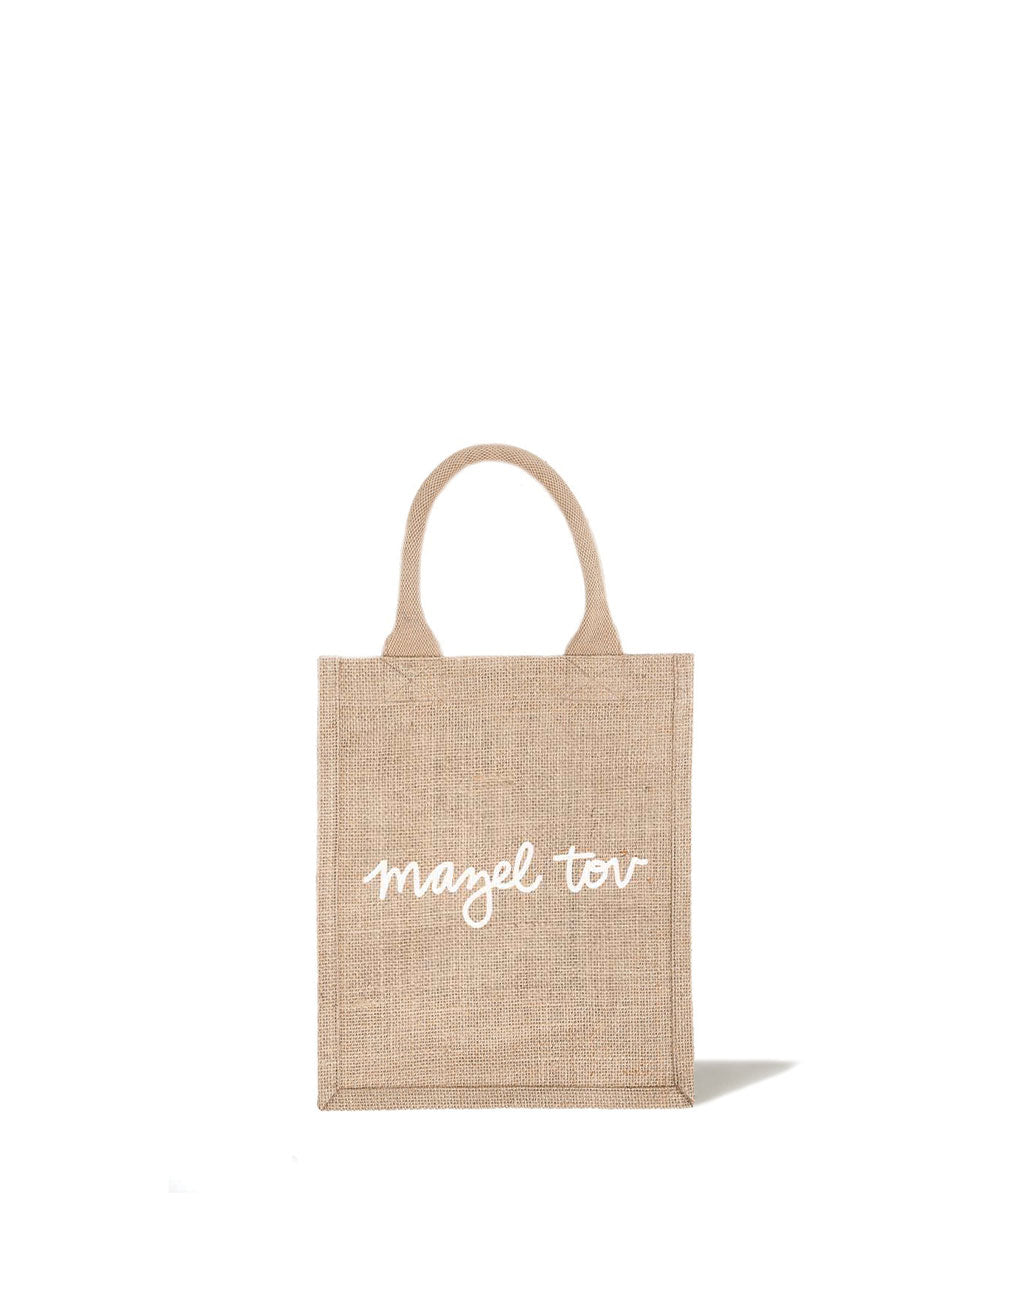 Medium Mazel Tov Reusable Gift Tote In White Font | The Little Market